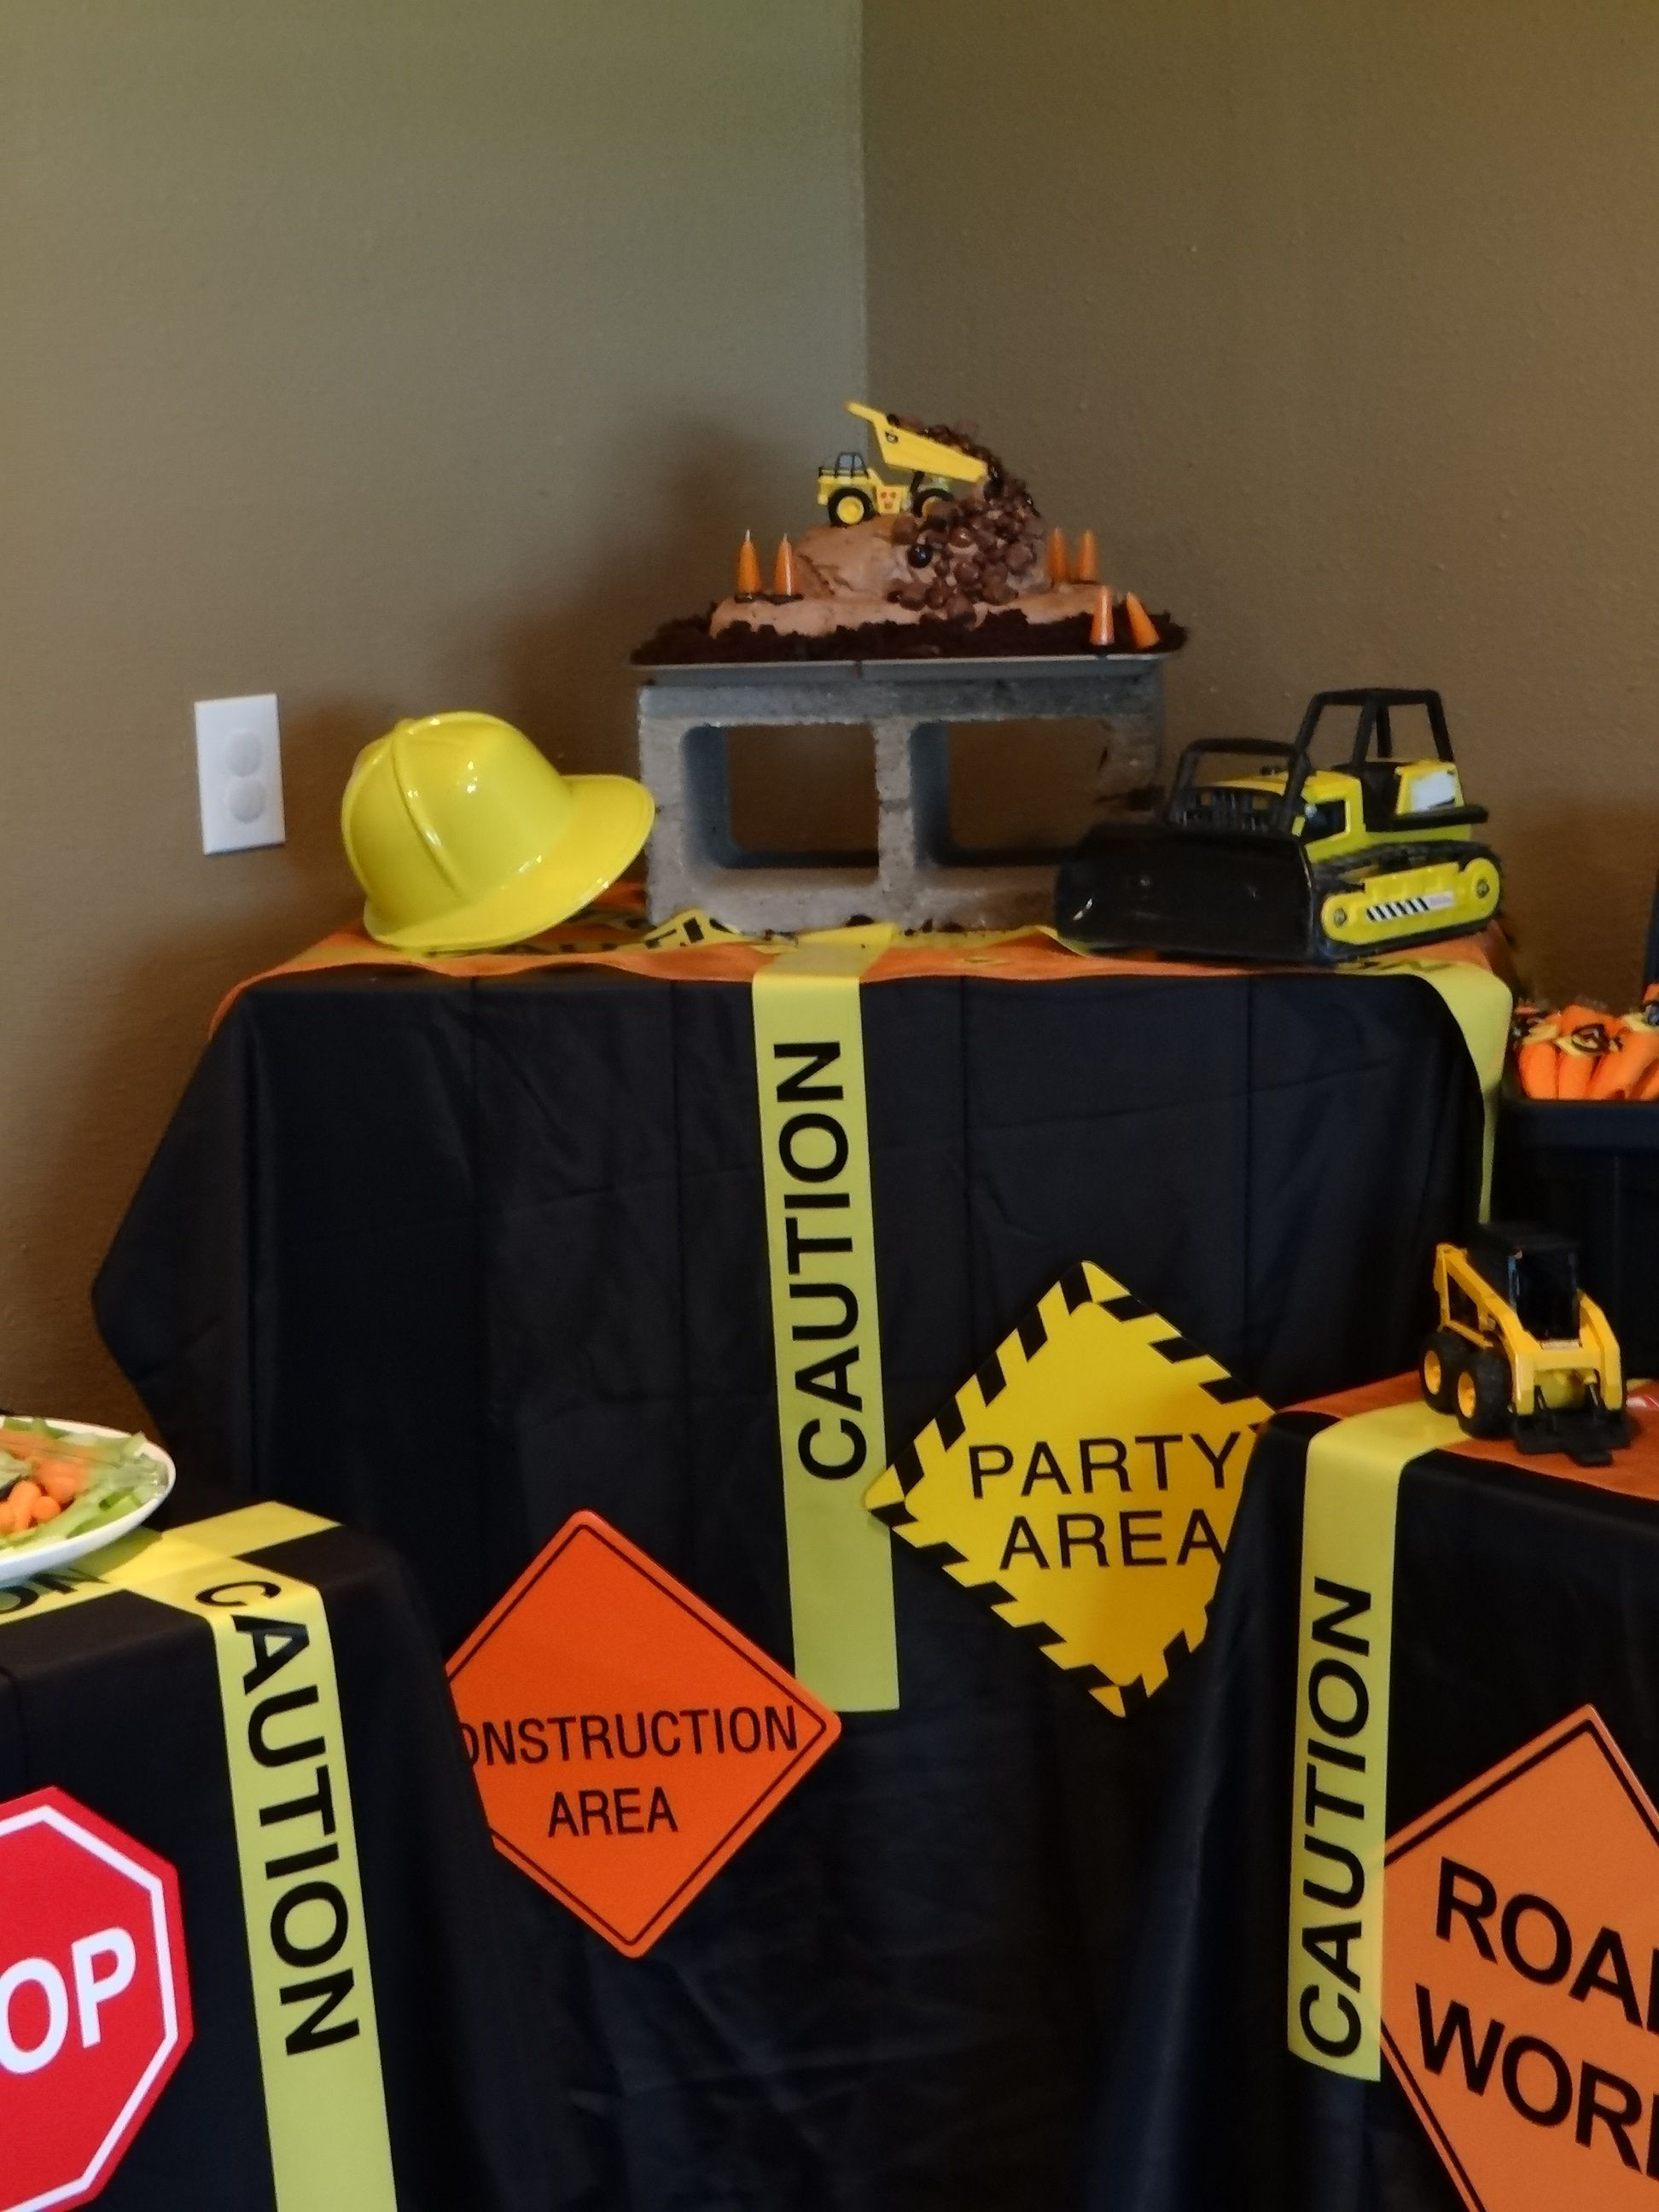 Construction Party Theme Love The Caution Tape And Cinder